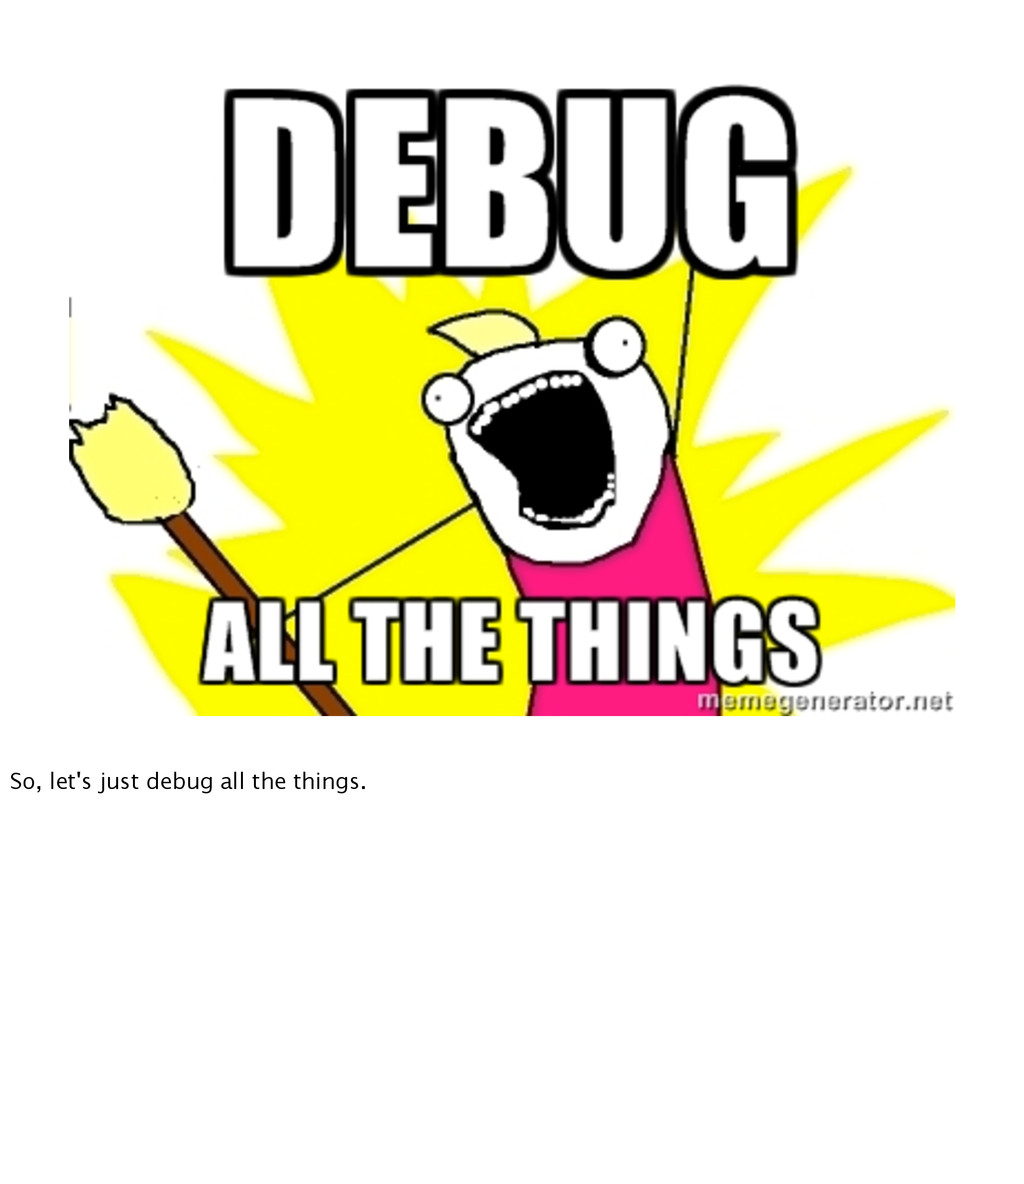 So, let's just debug all the things.